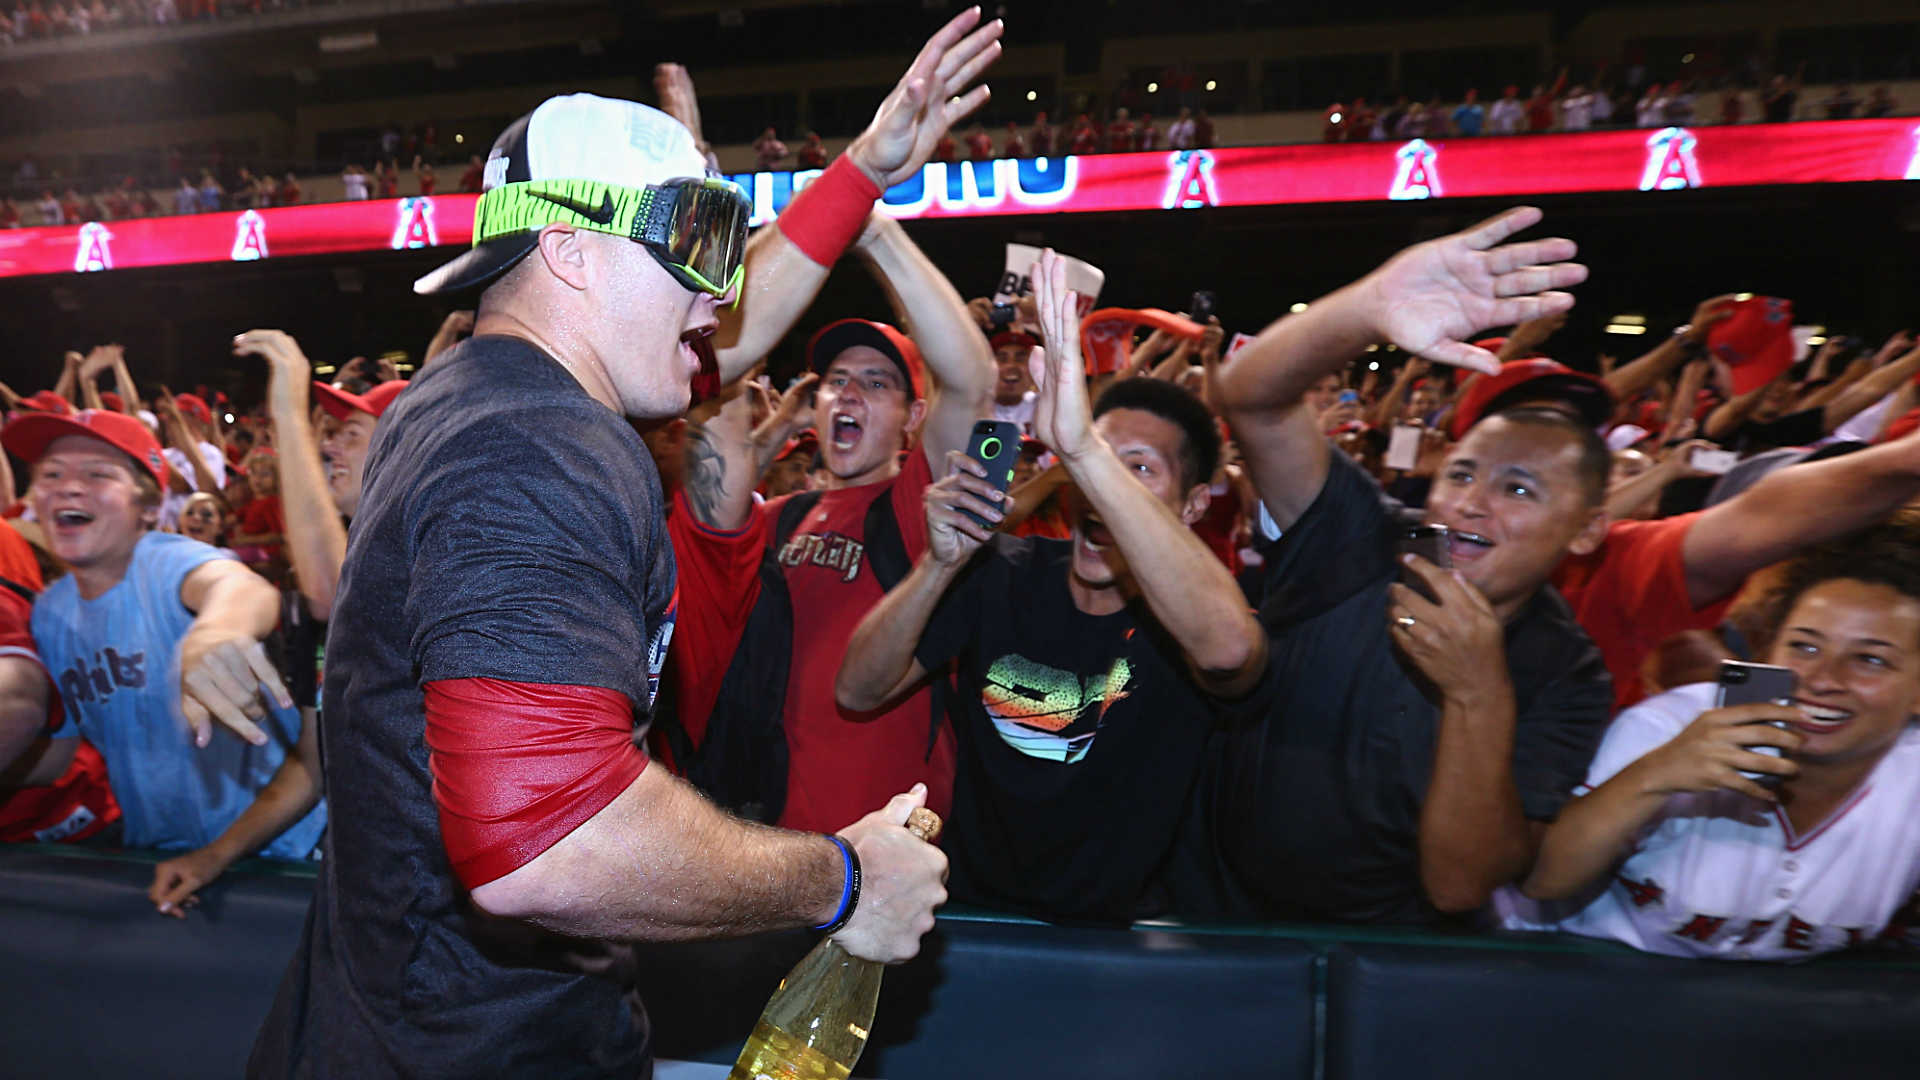 Mike-Trout1-091714-Getty-FTR.jpg